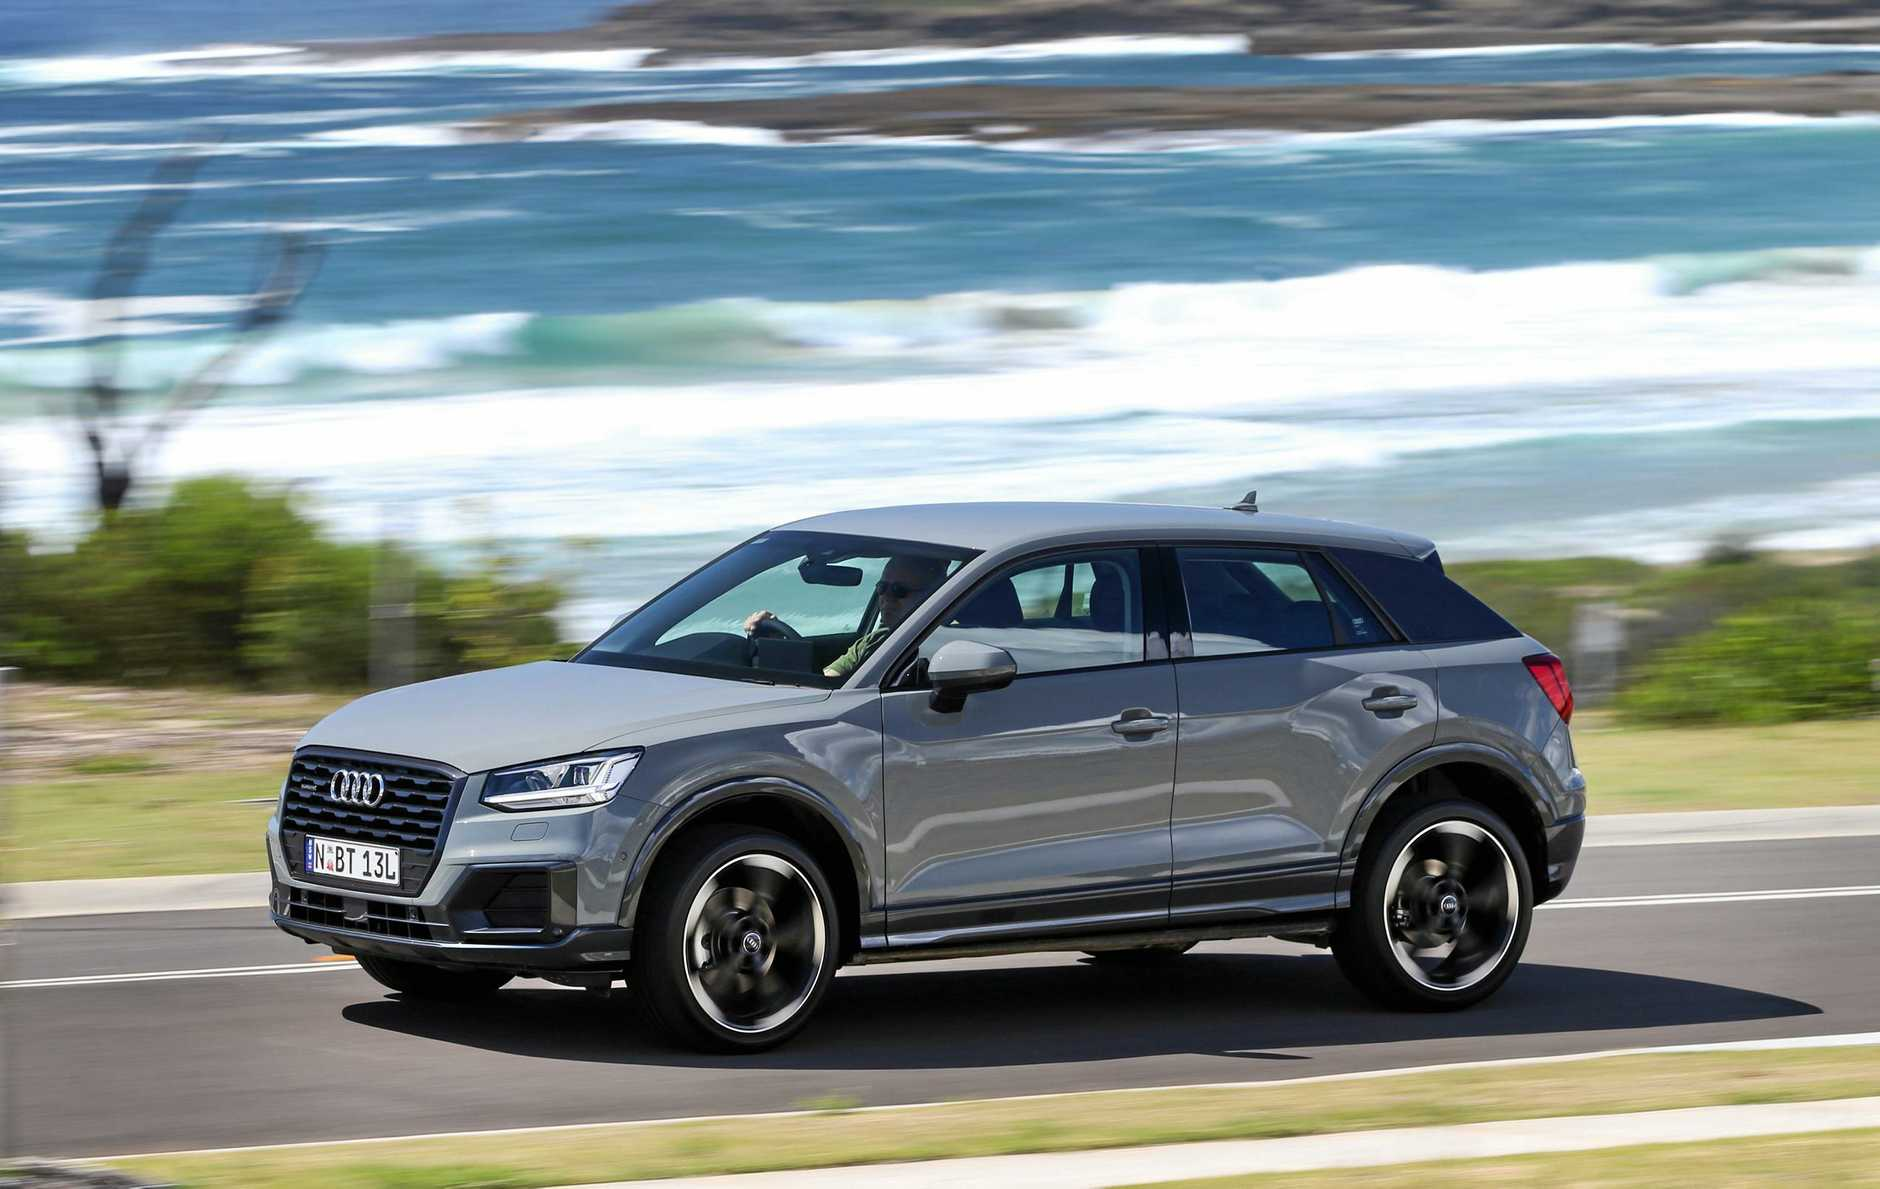 2017 Audi Q2 2.0 TFSI quattro sport completes the Audi Q2 line-up in Australia.